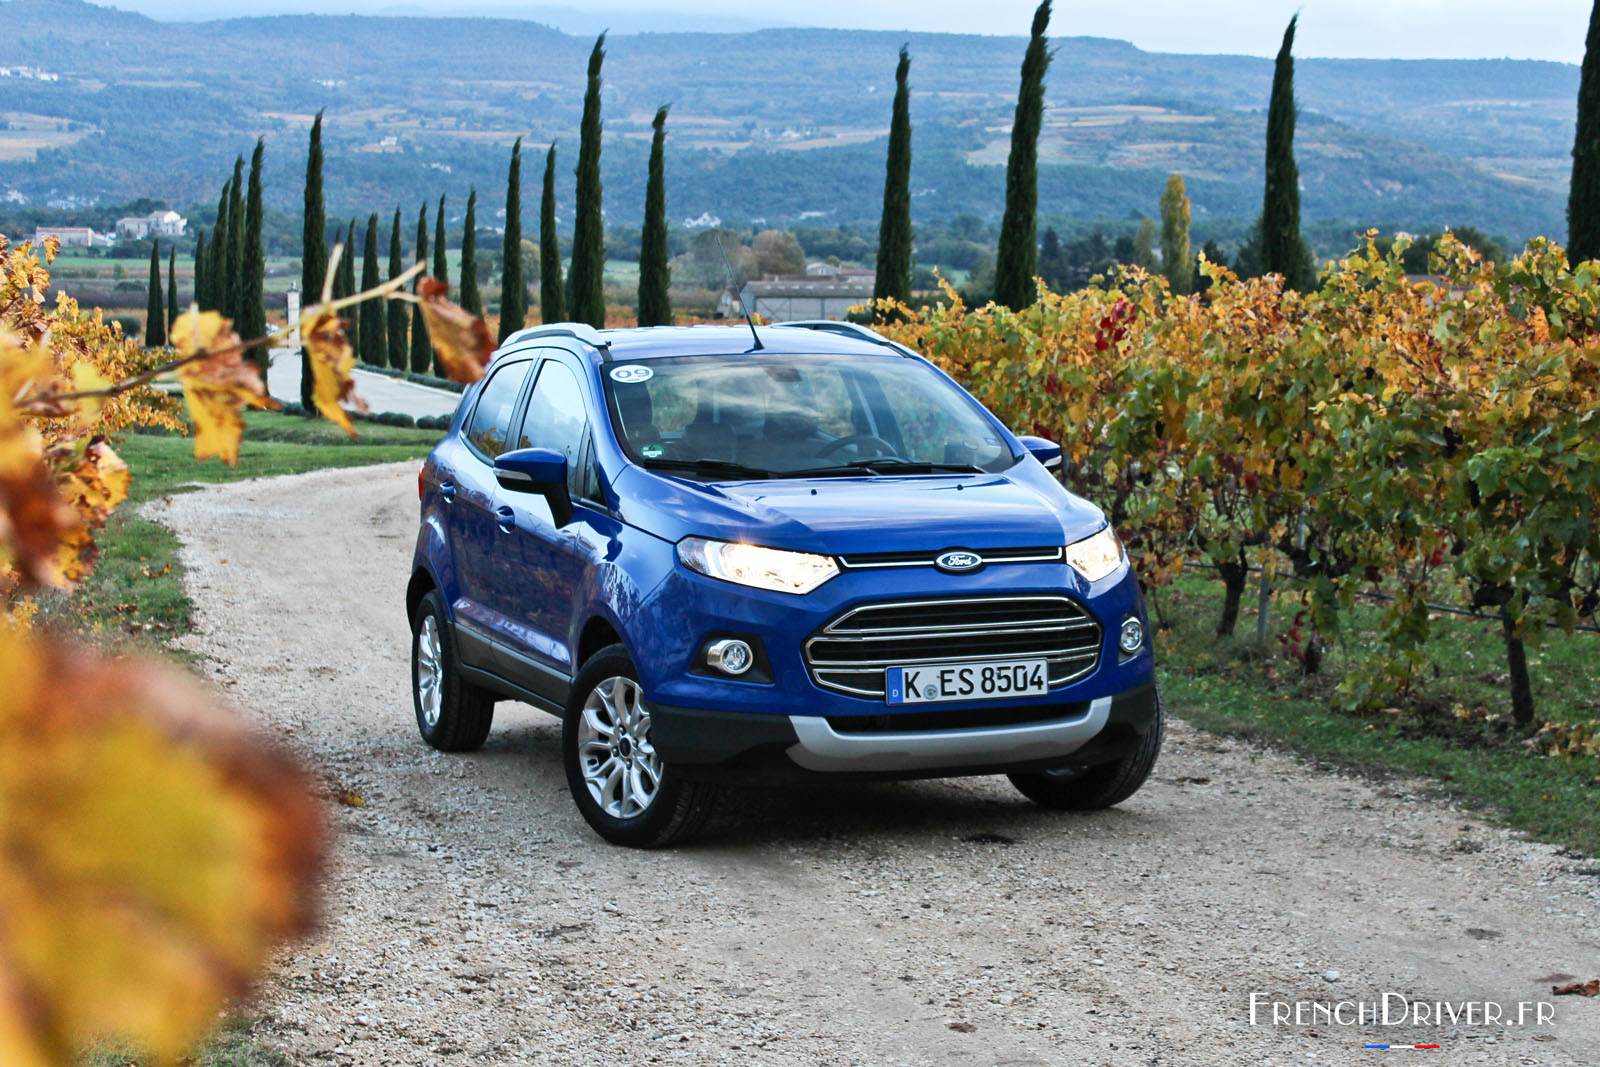 Essai Du Ford Ecosport L Outsider Des Petits Crossovers French Driver